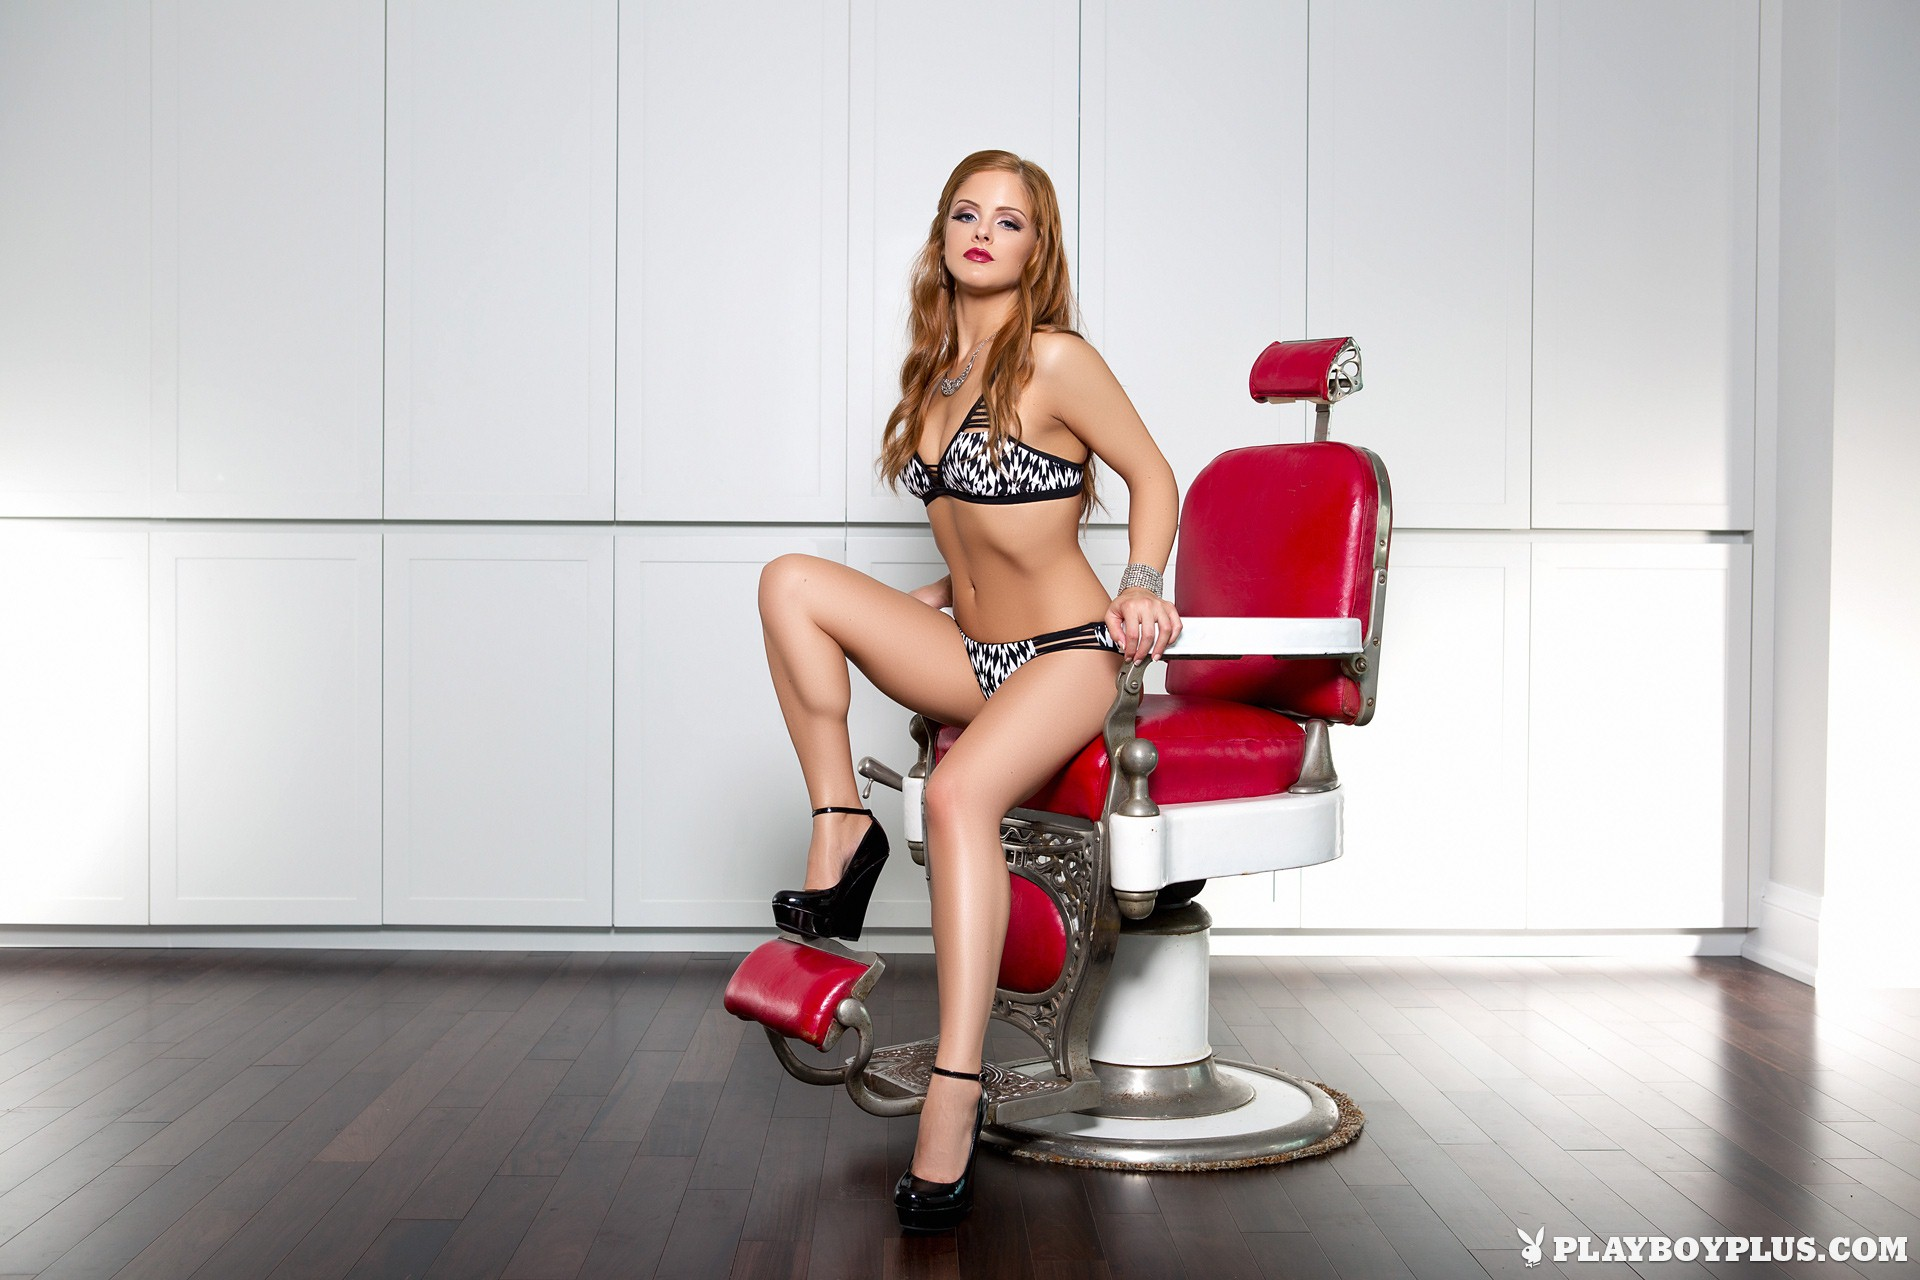 Josée Lanue nude in Barber's Chair for Playboy | Daily Girls @ Female Update